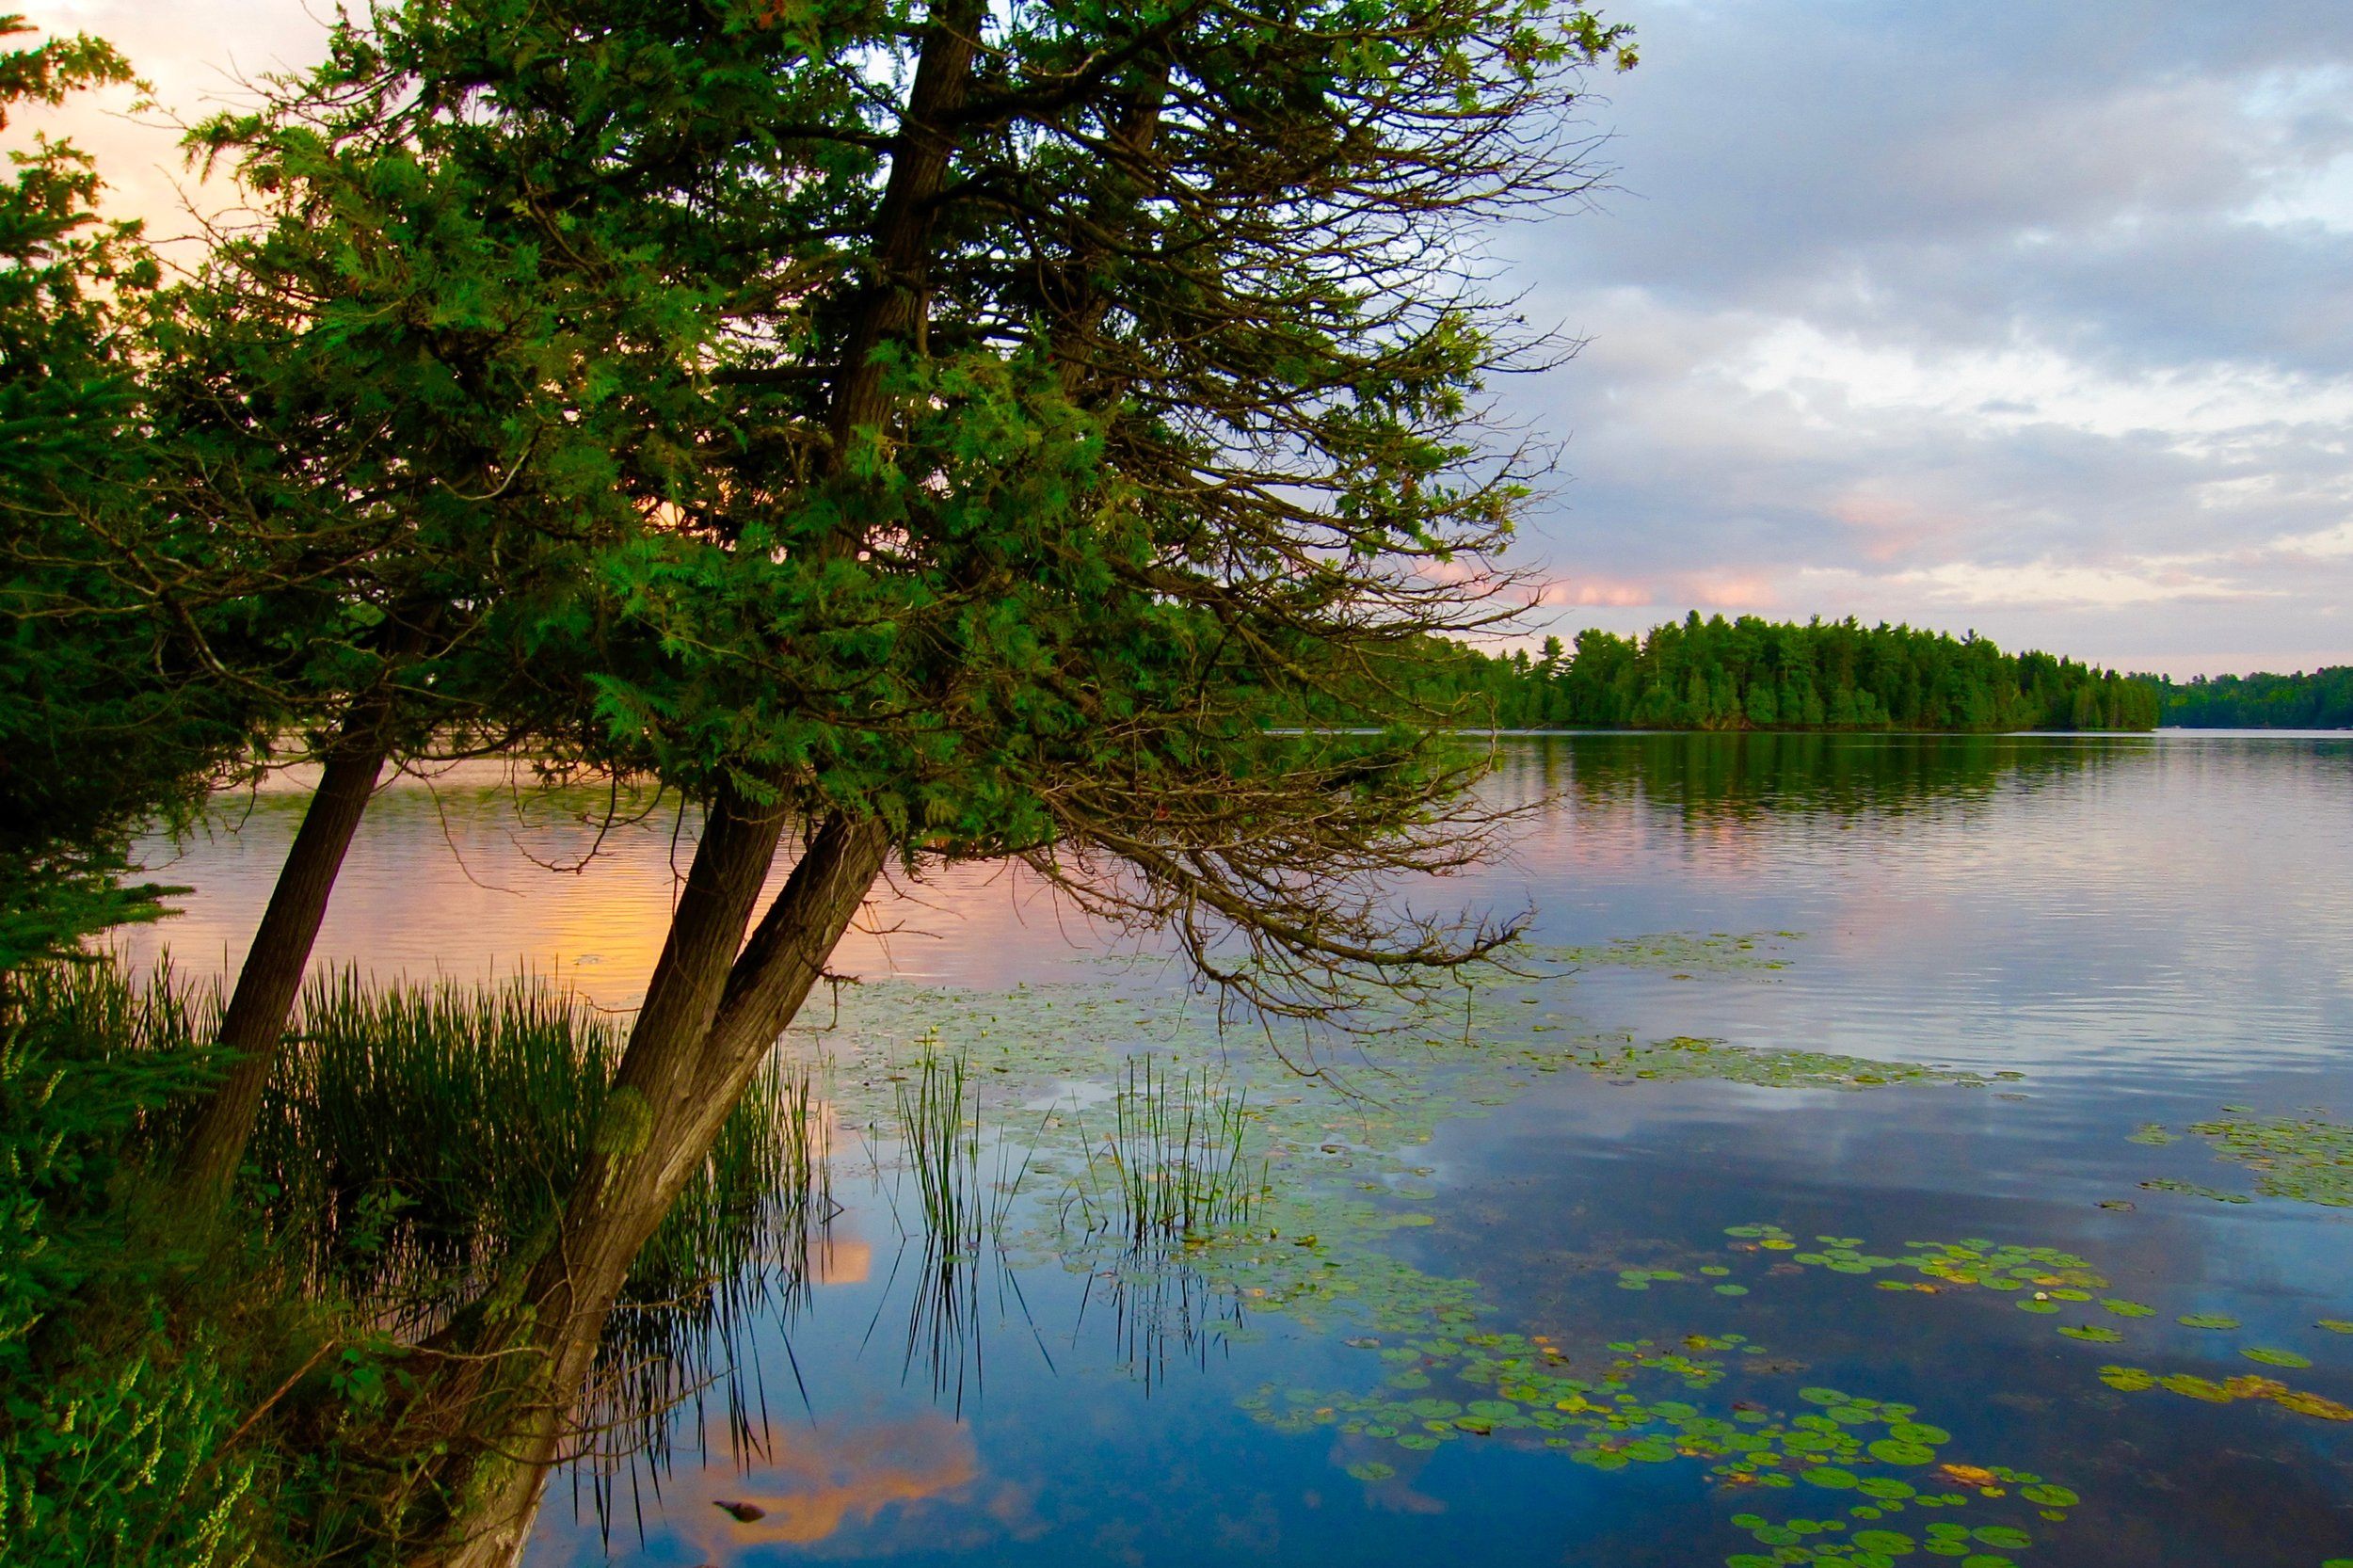 The wilderness of North Ontario